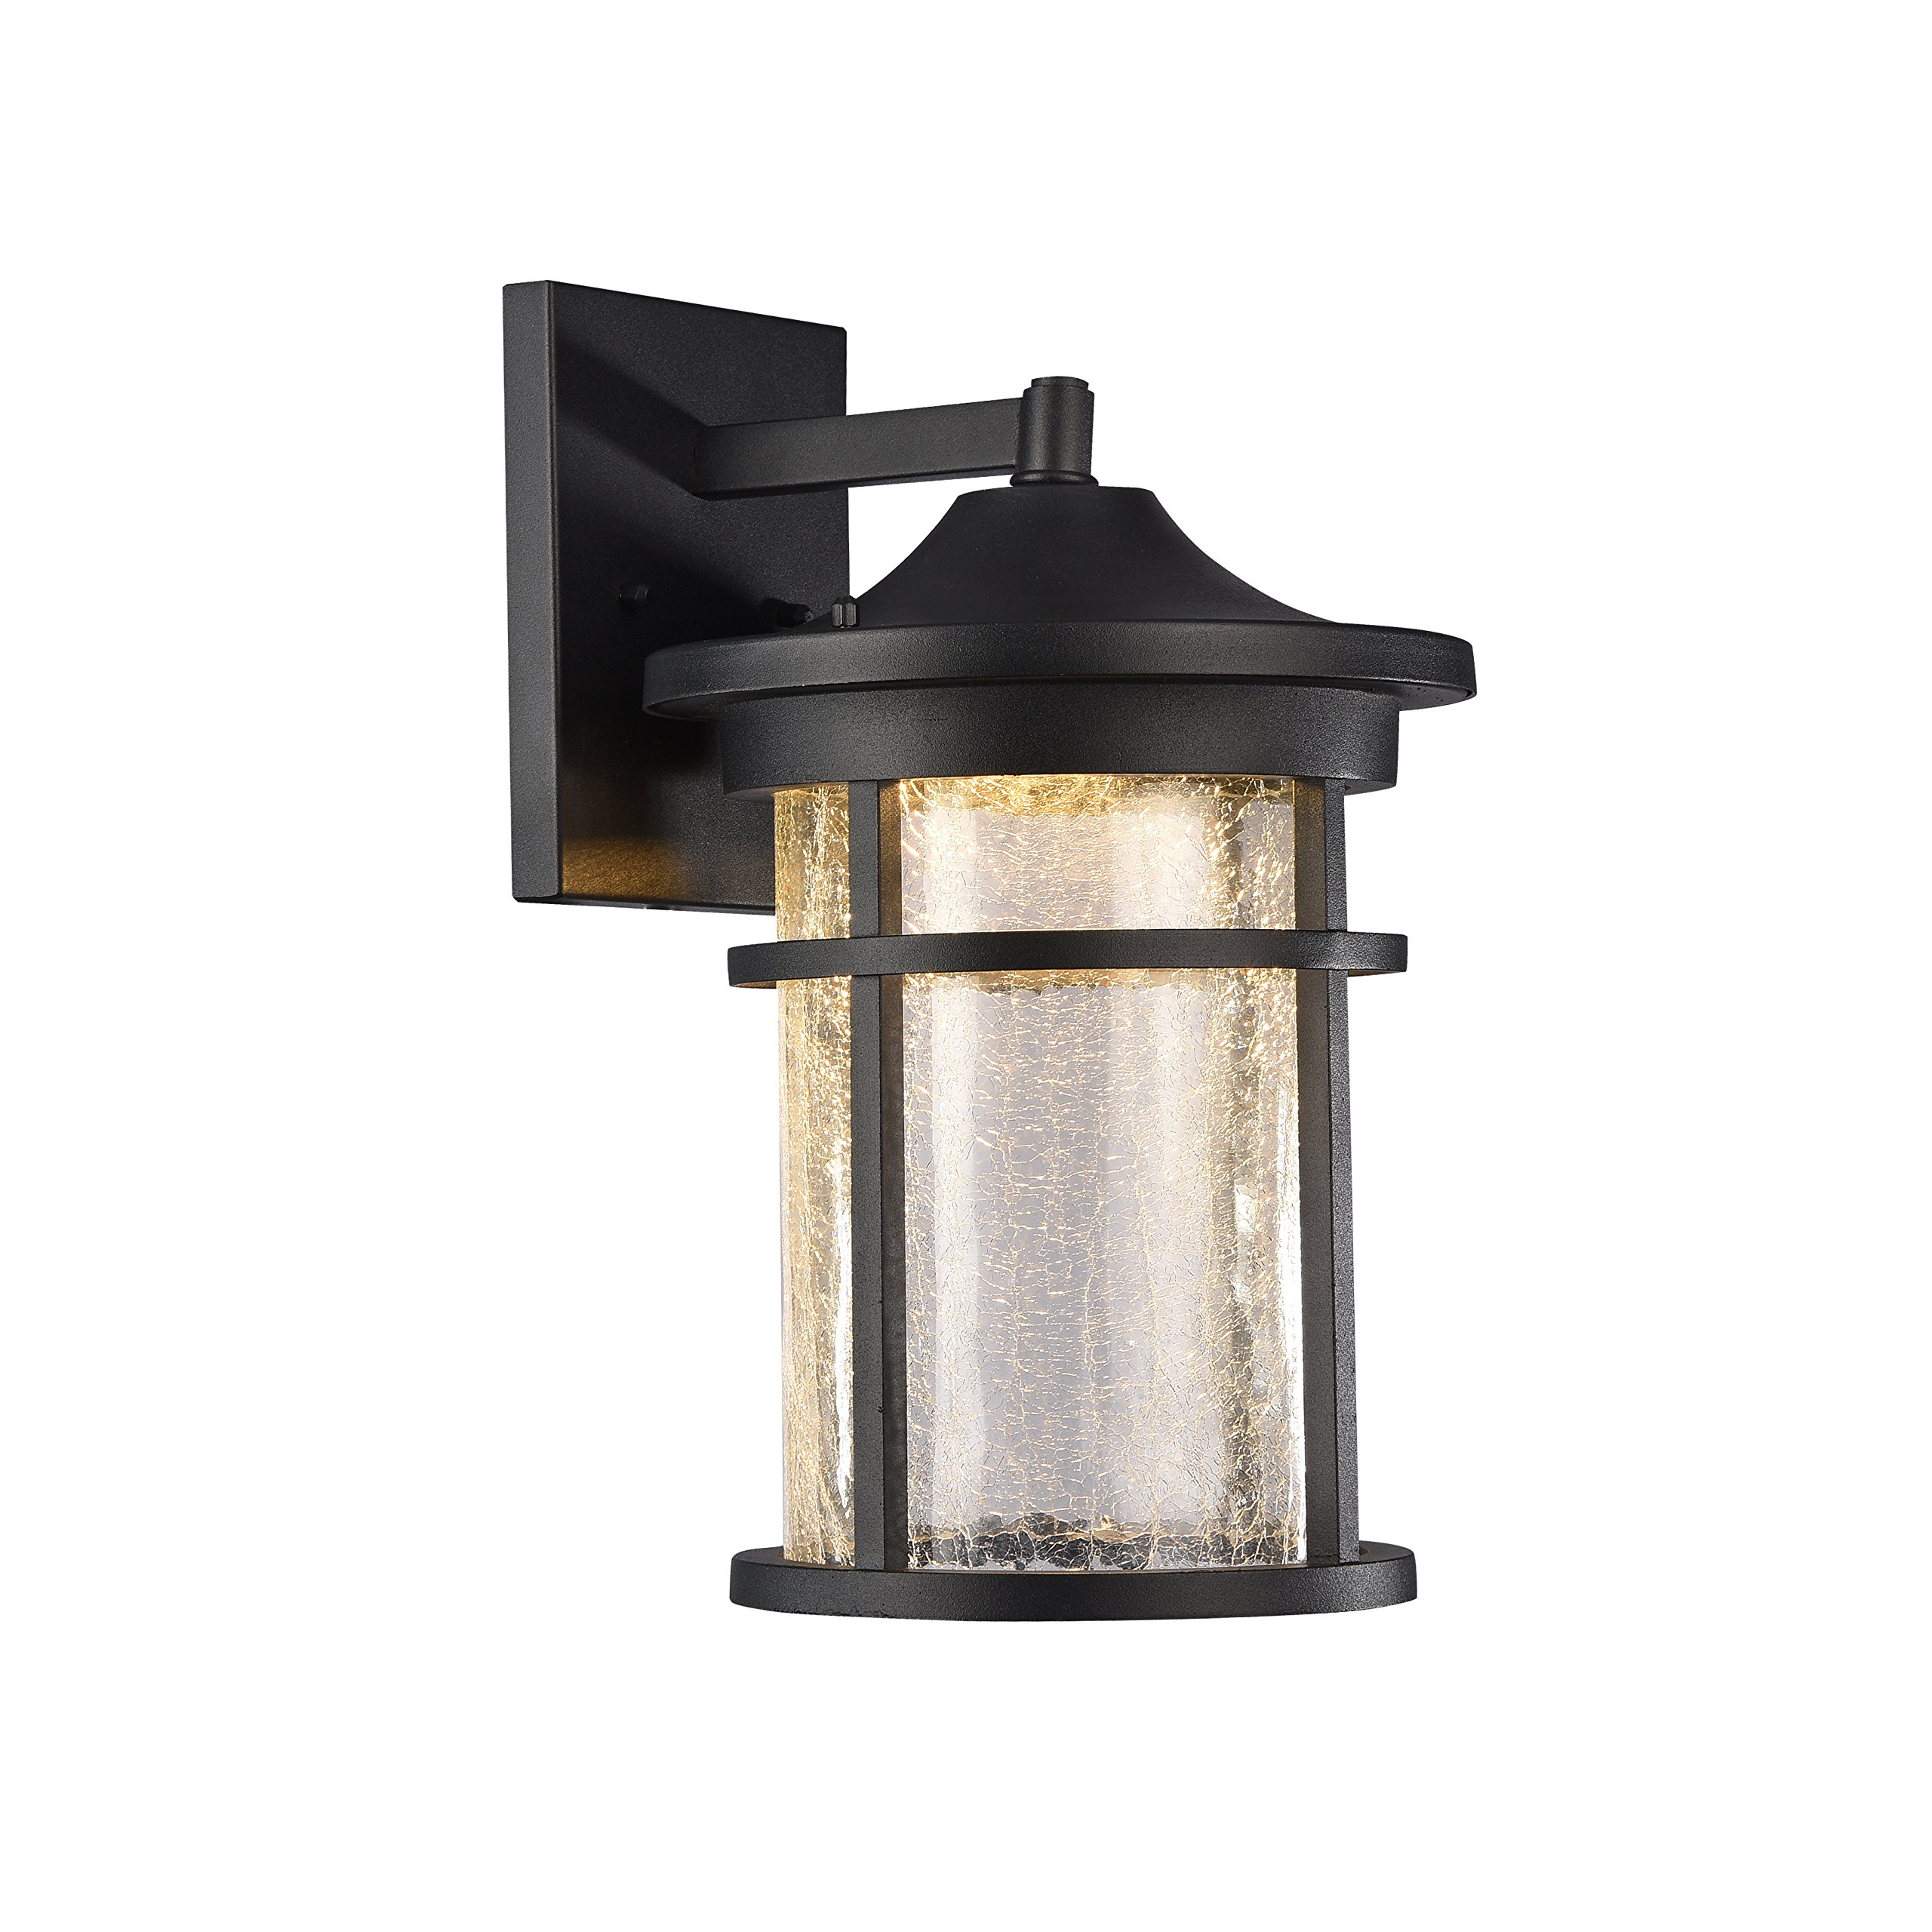 Chloe Lighting CH22L52BK15-OD1 Frontier Transitional Outdoor Wall Sconce with 15'' Height